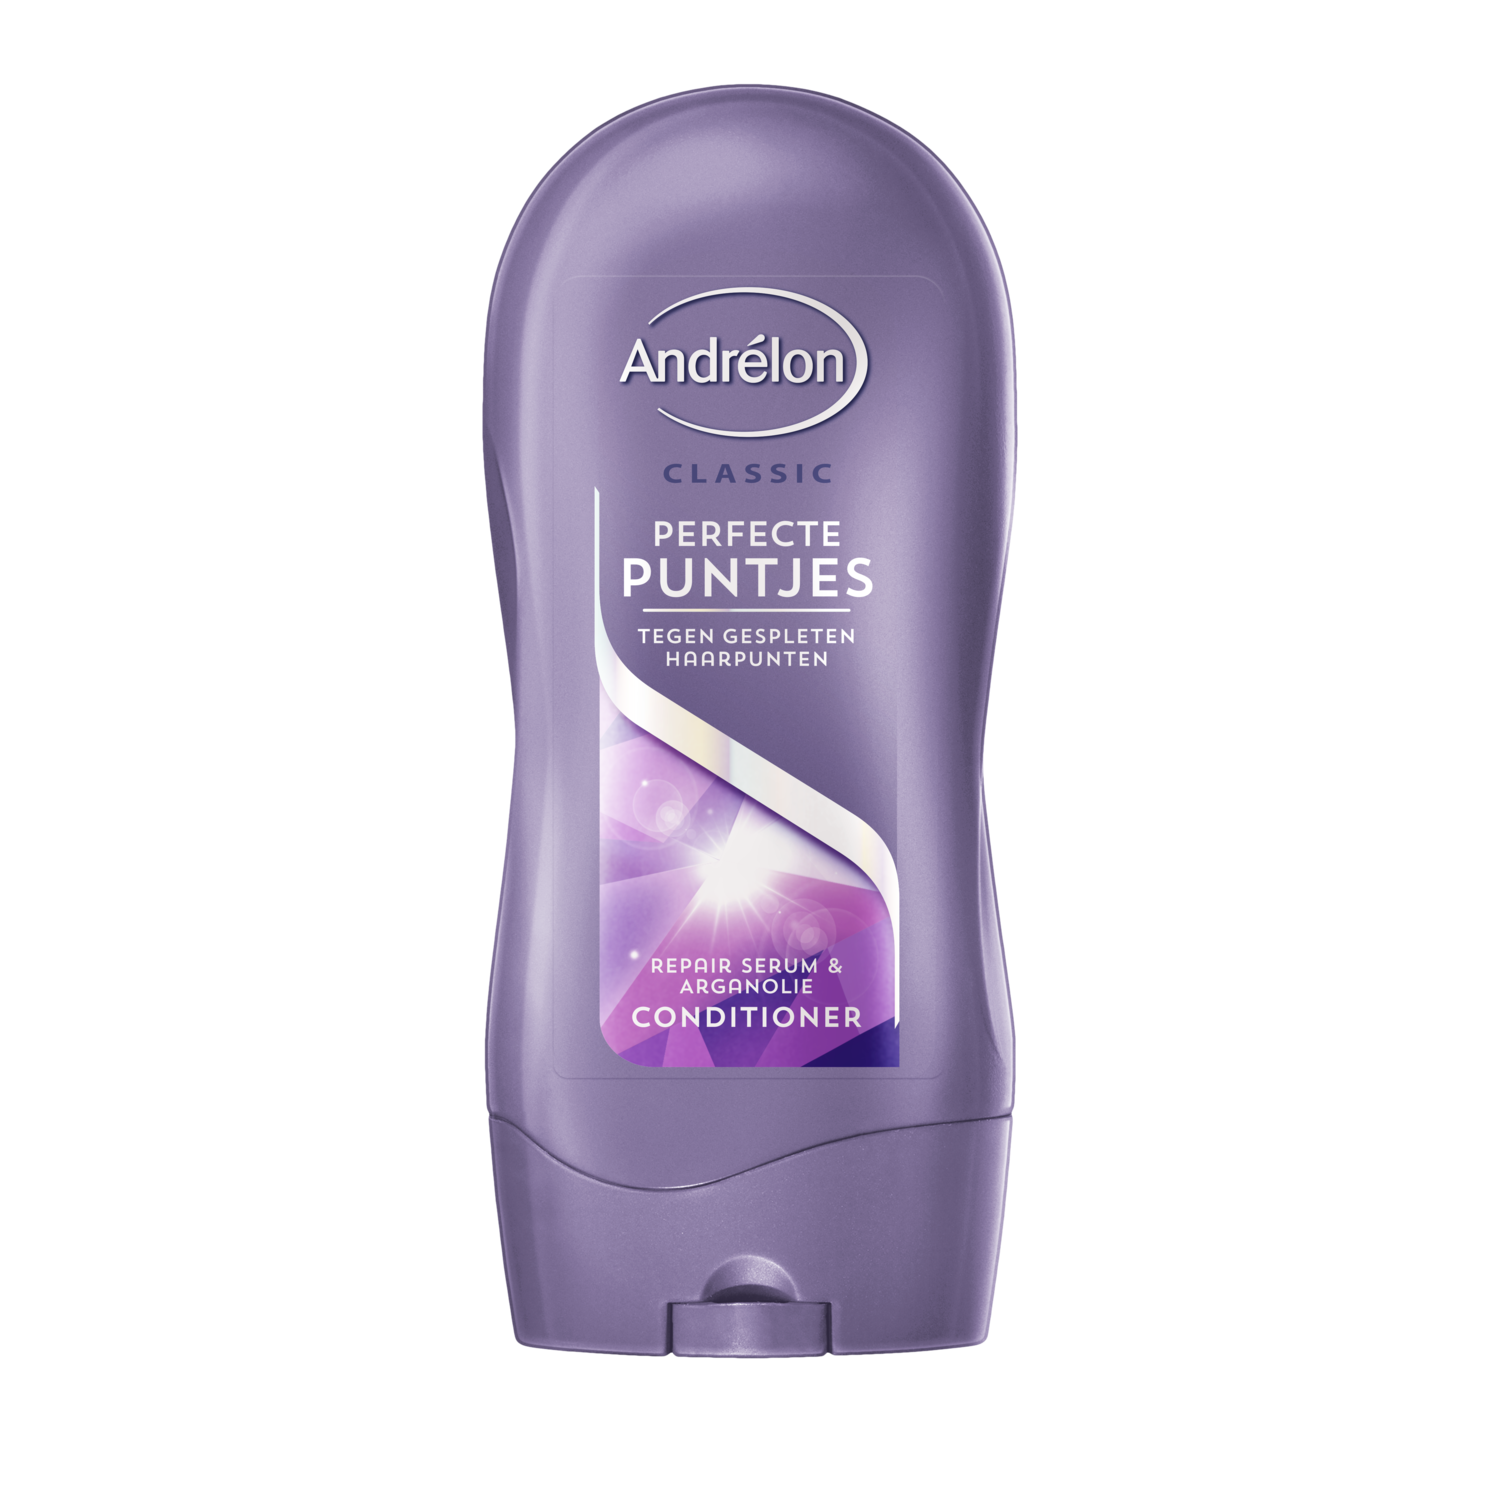 Andrelon Classic Perfecte Puntjes CD 300ml 8710447321461